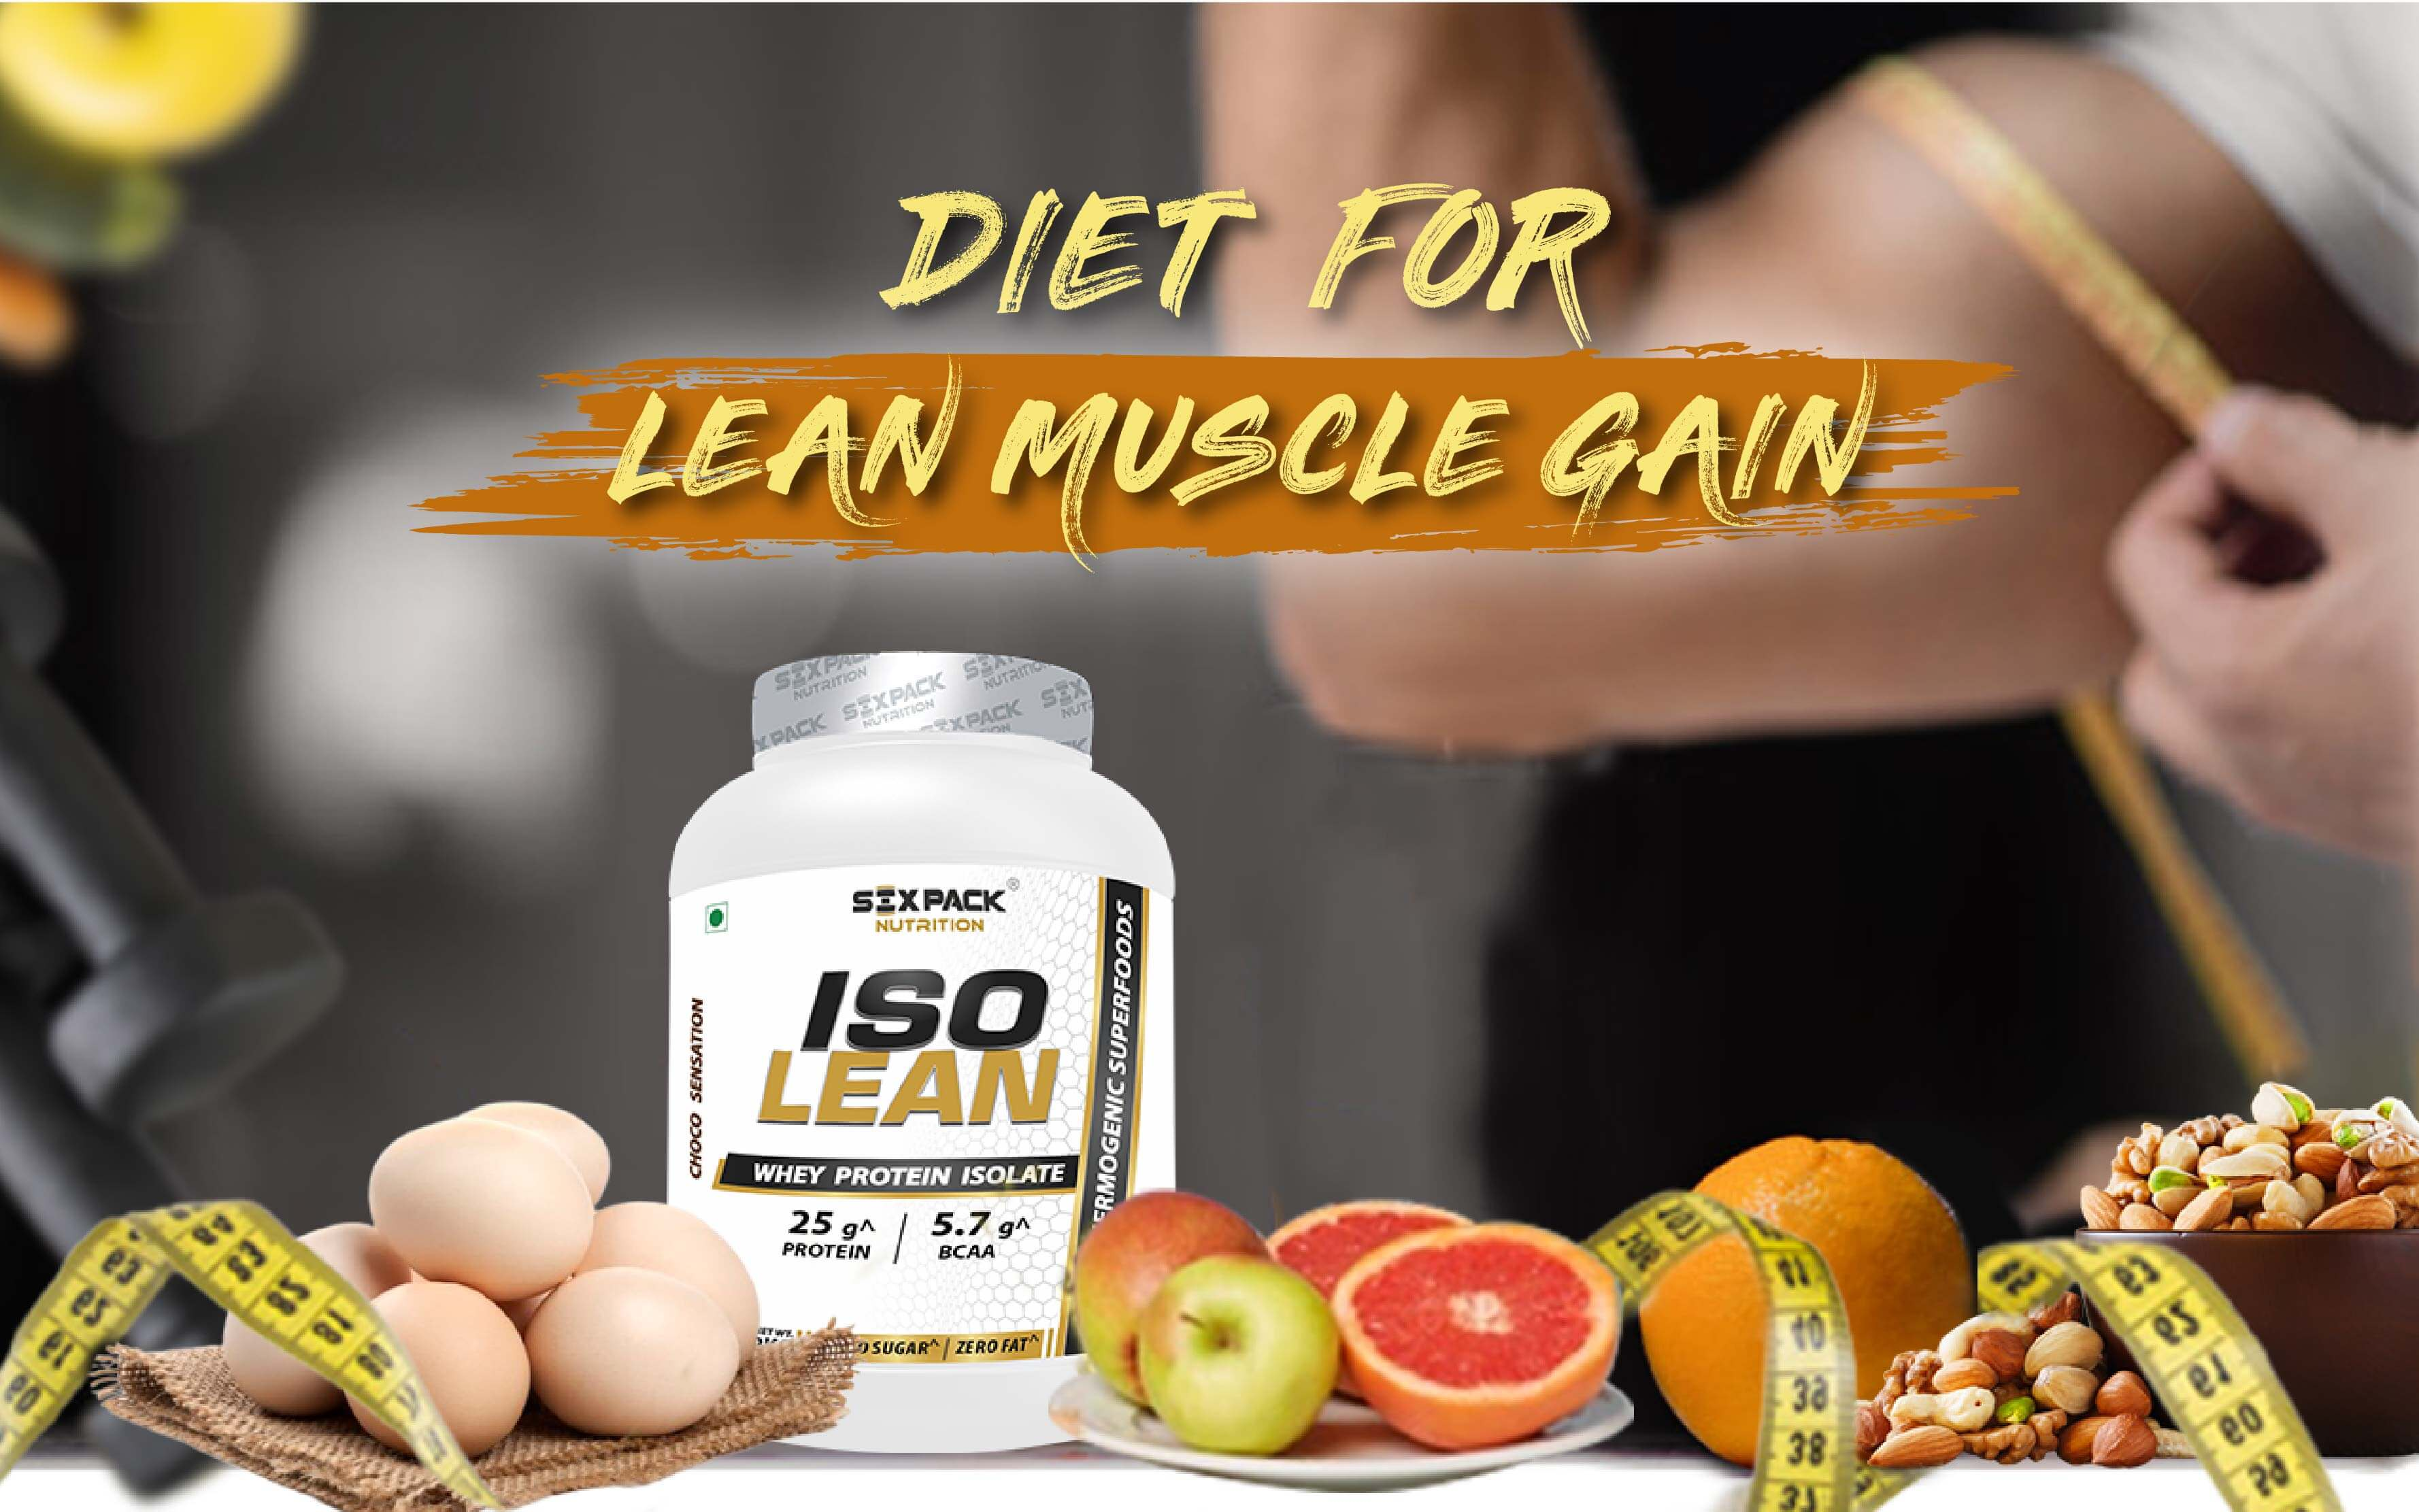 Diet For Lean Muscle Gain